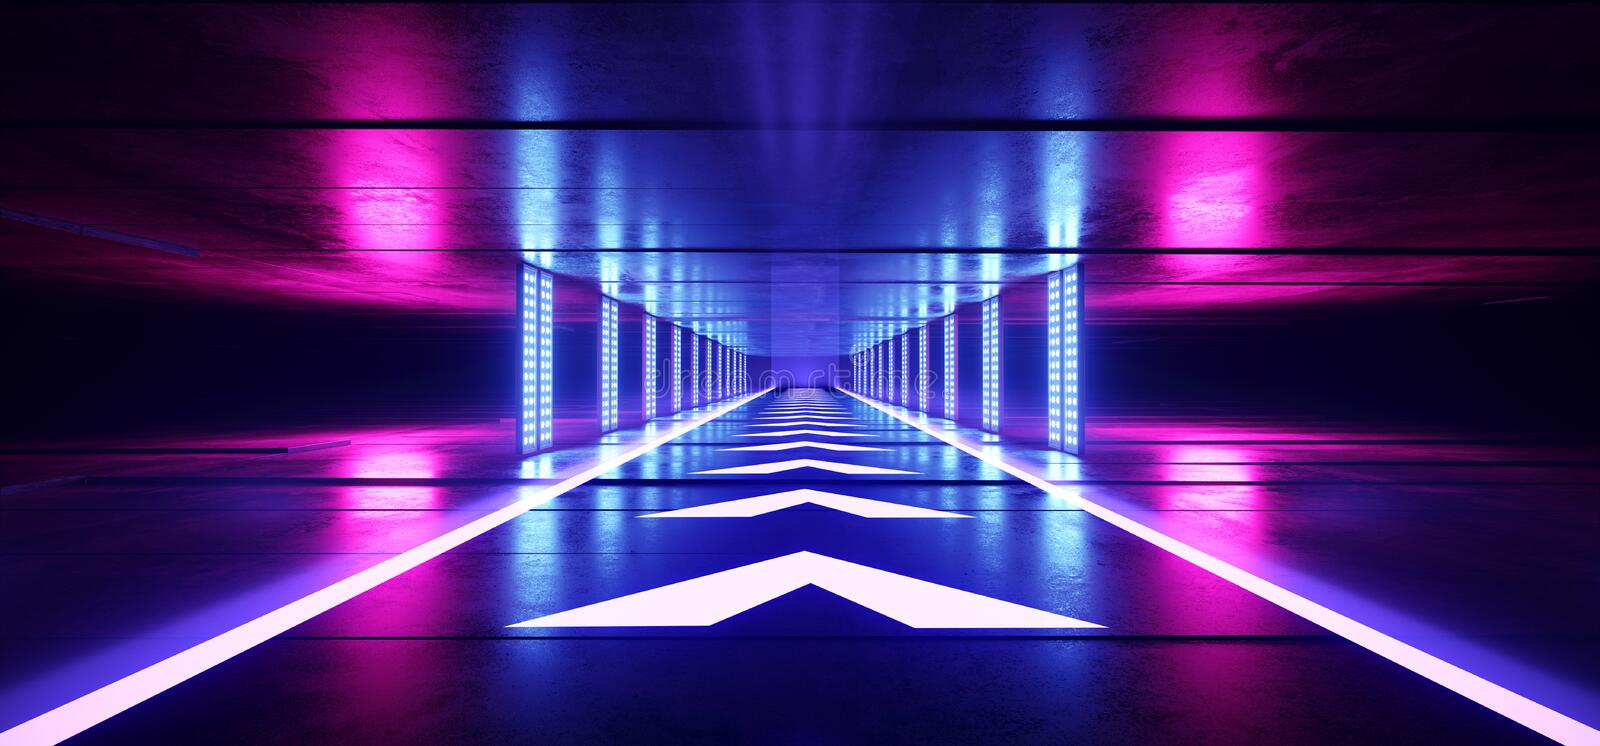 Empty Neon Fluorescent Lights Purple Sci Fi Futuristic Dark Alien Spaceship Hall Tunnel Corridor Led Laser Arrow Shaped Floor vector illustration